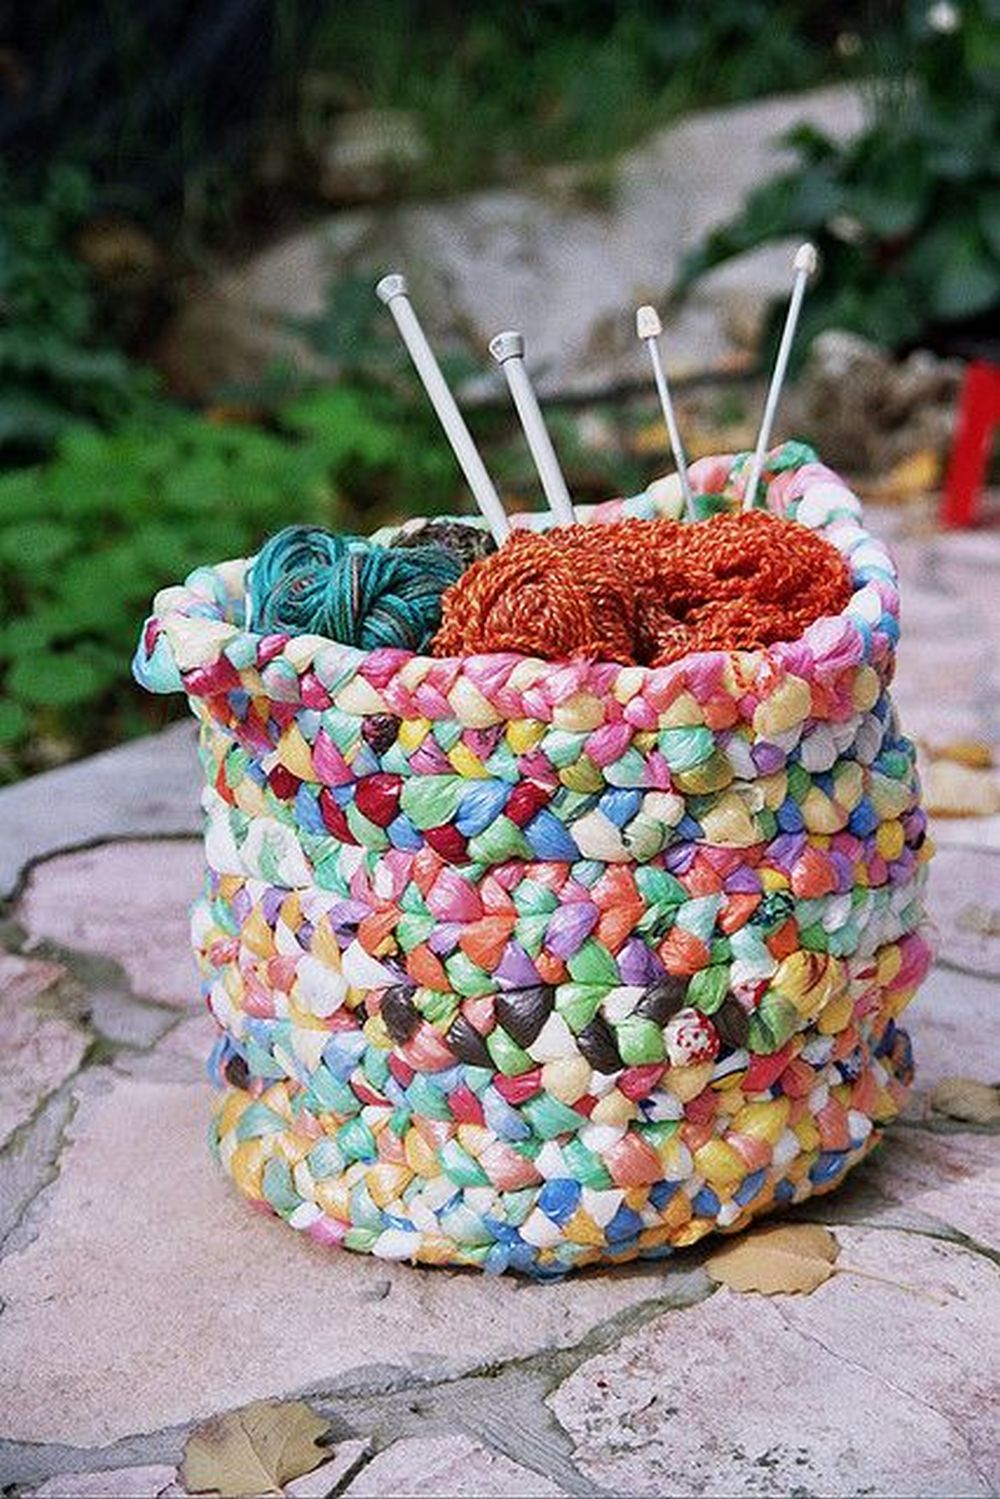 How to Turn Plastic Bags into a Basket